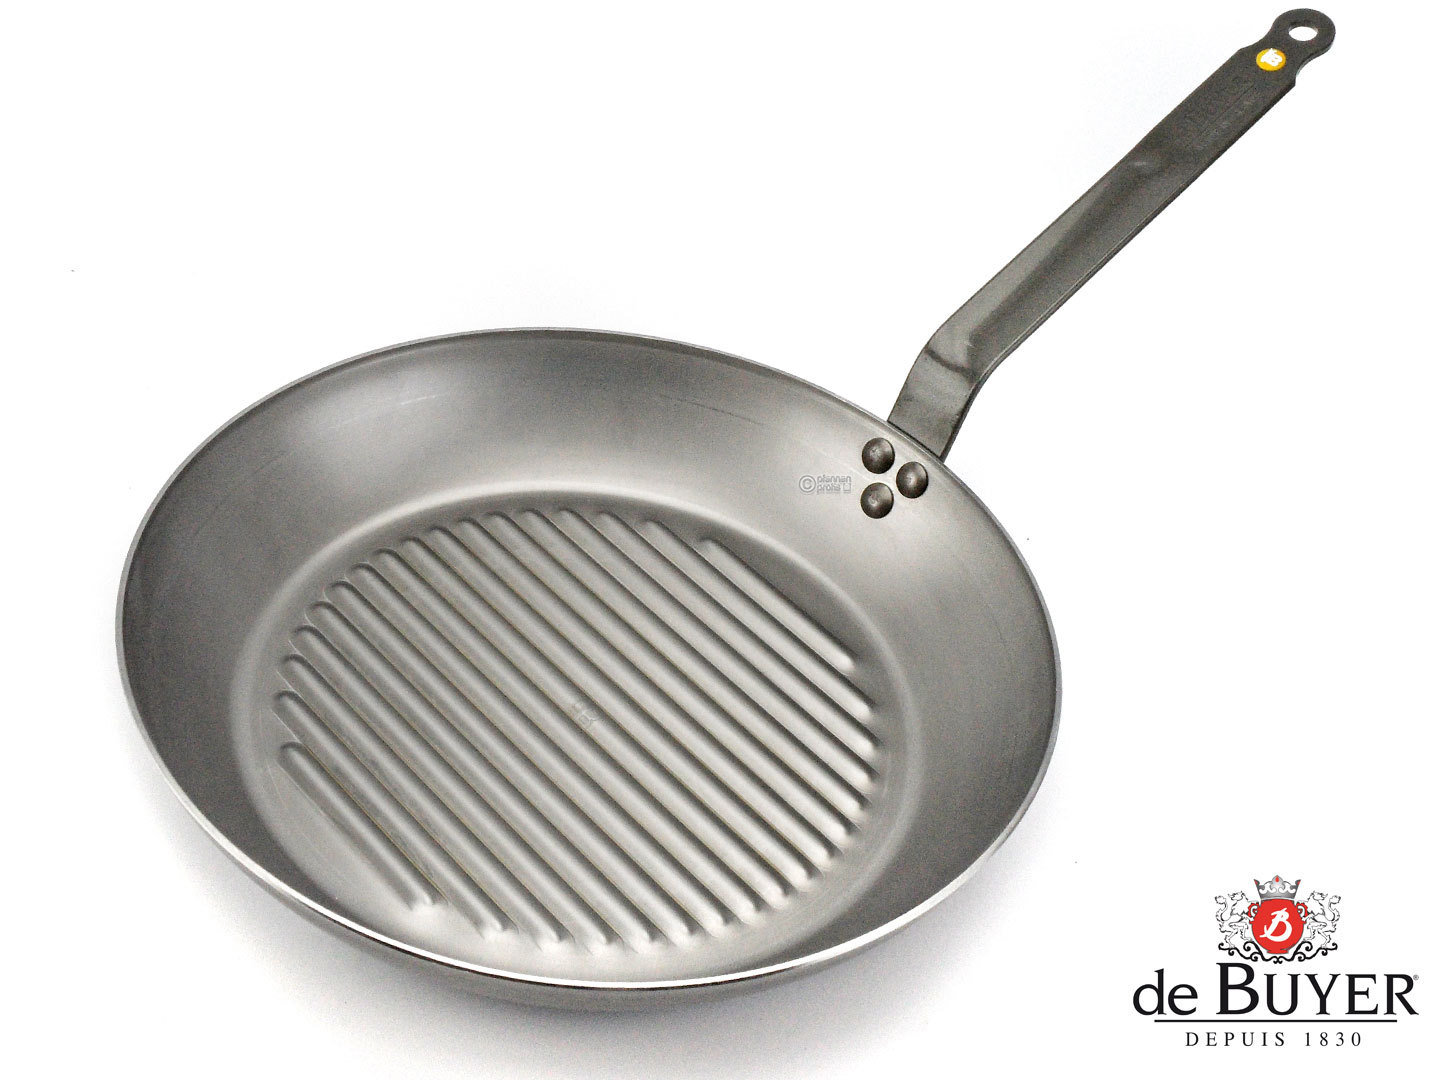 DE BUYER grill pan MINERAL B ELEMENT 32 cm ribbed iron pan